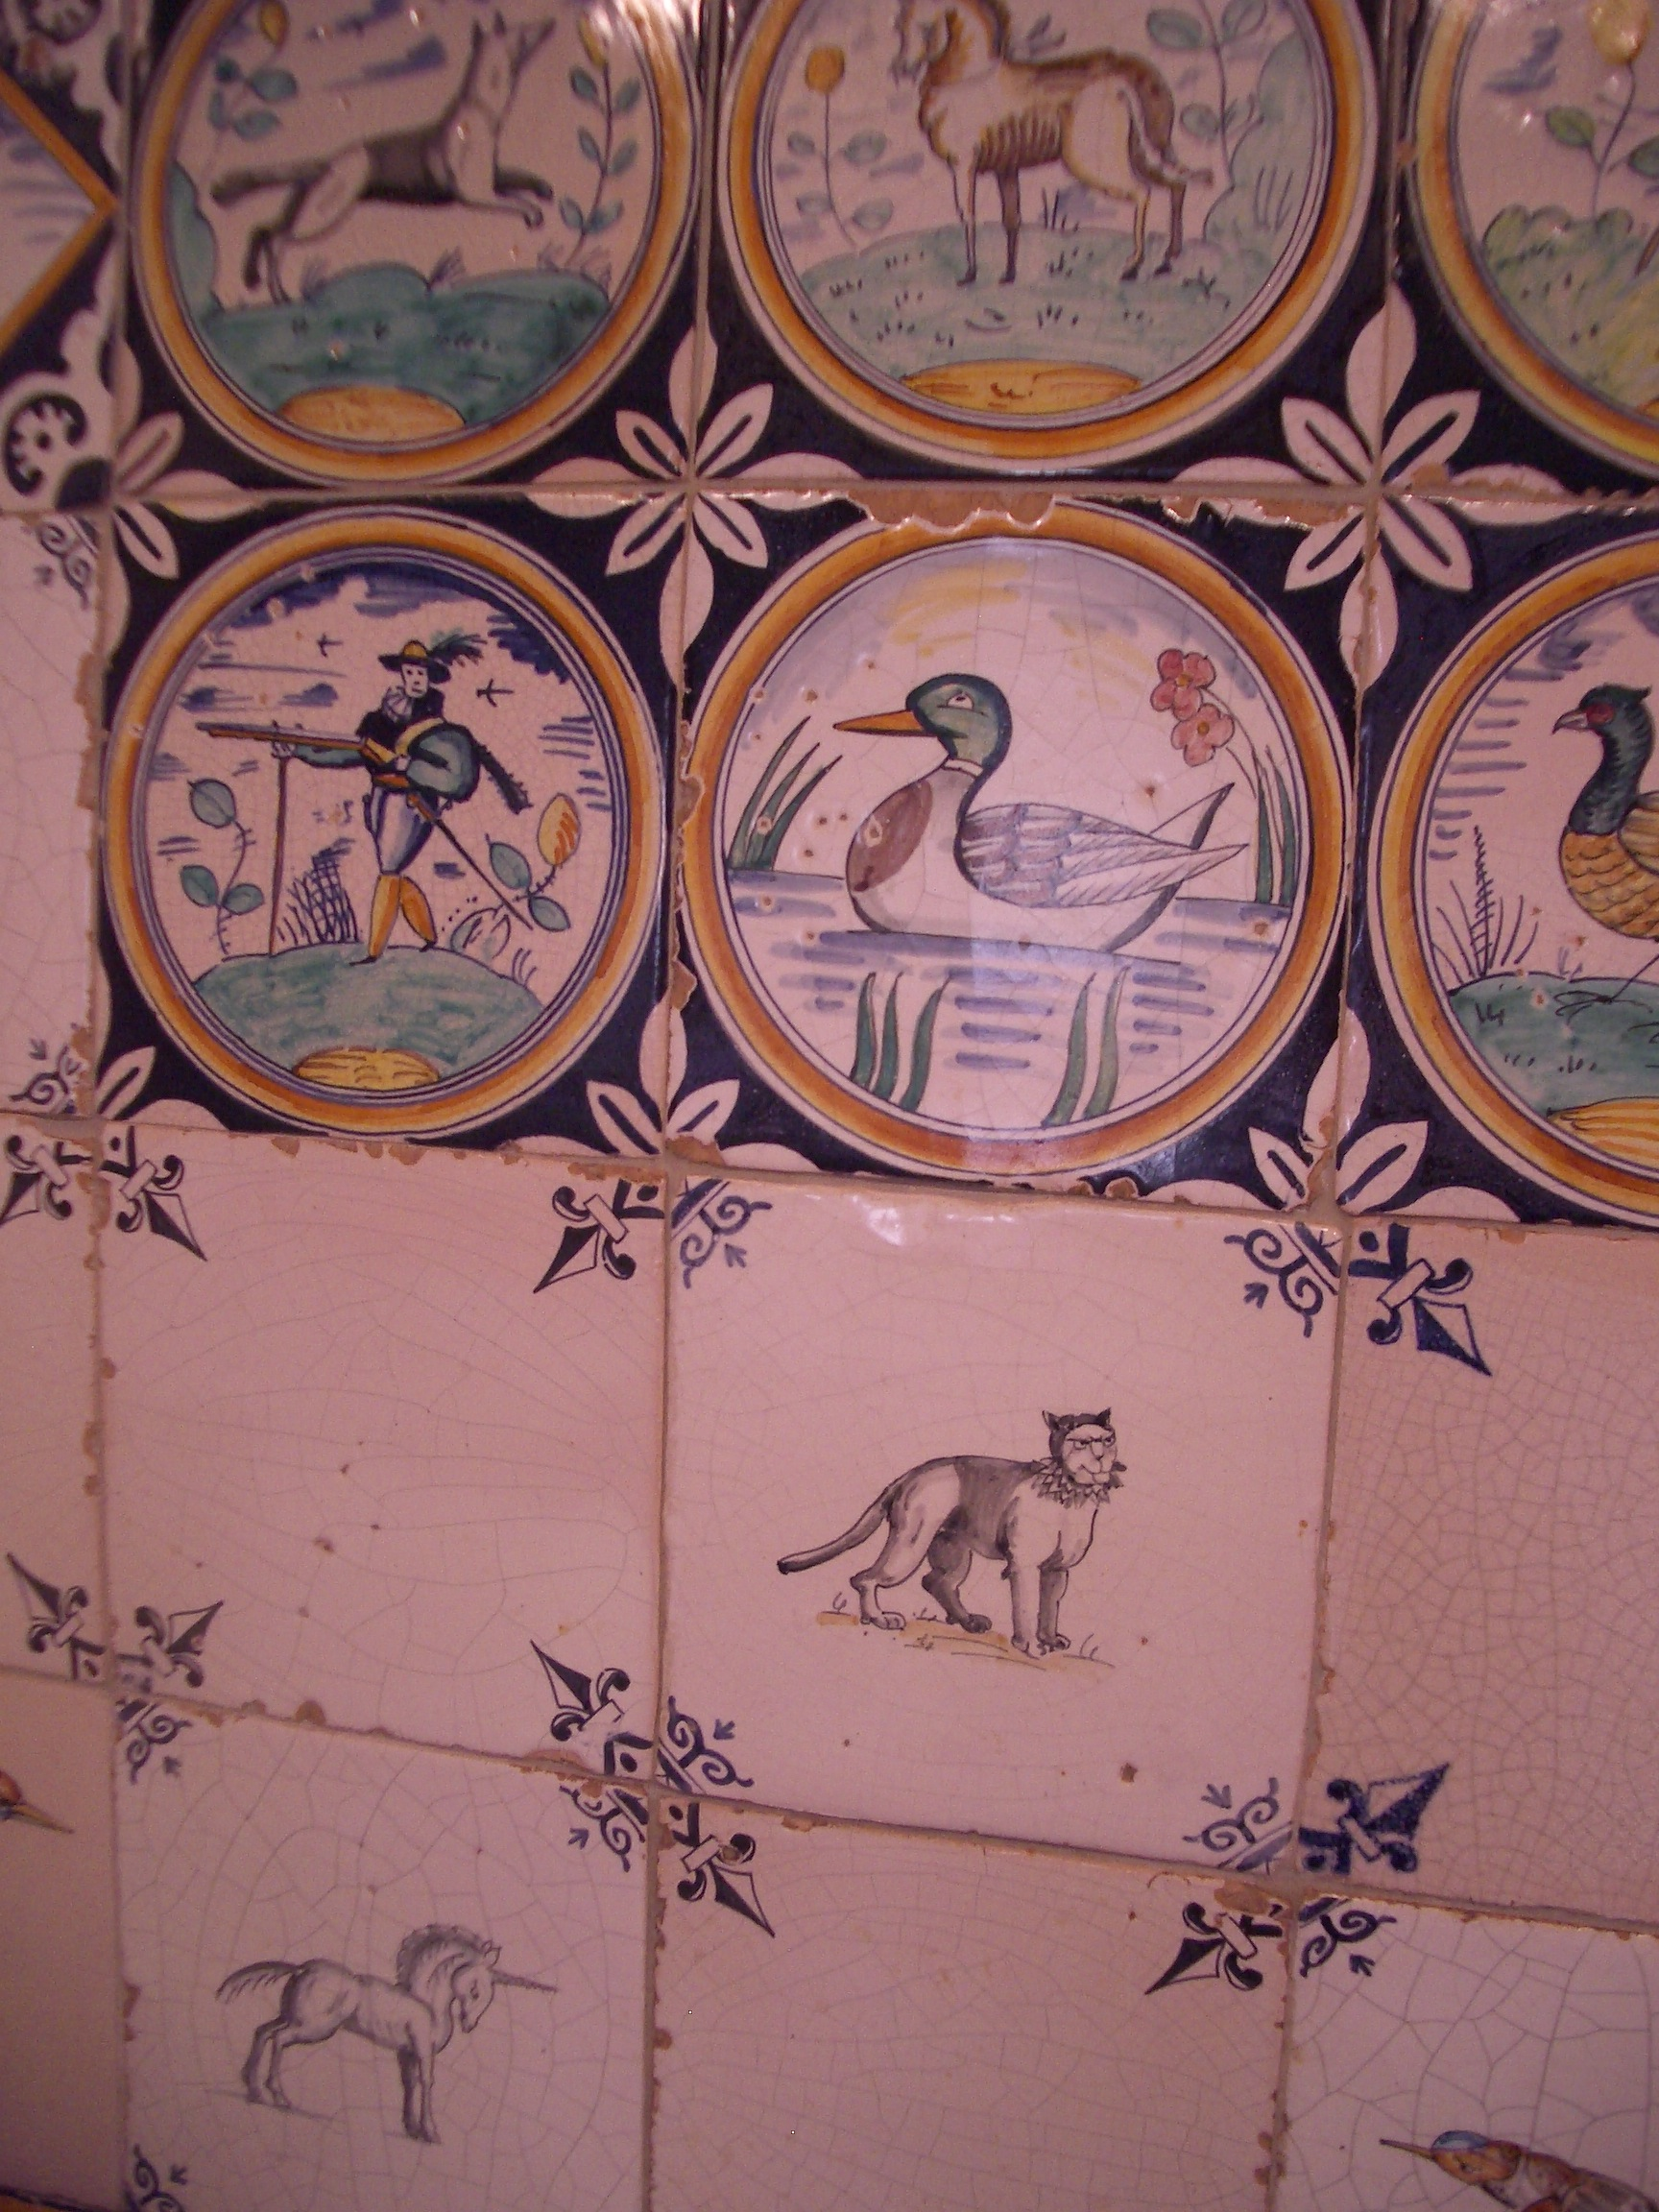 Delftware Tiles. Behind the kitchen Wolf range is apanel of reproduction early and mid-seventeenth century Dutch tiles, some depictsoldiers and animals set within borders of concentric circles, others are mid-seventeenth century Dutch animaltiles with ox-head corner motifs and plain tiles with  flour-de-lis  corner motifs.  Thecorner motifs are executed in the reserving technique (such that when four corners meet, they create an ornamental design).